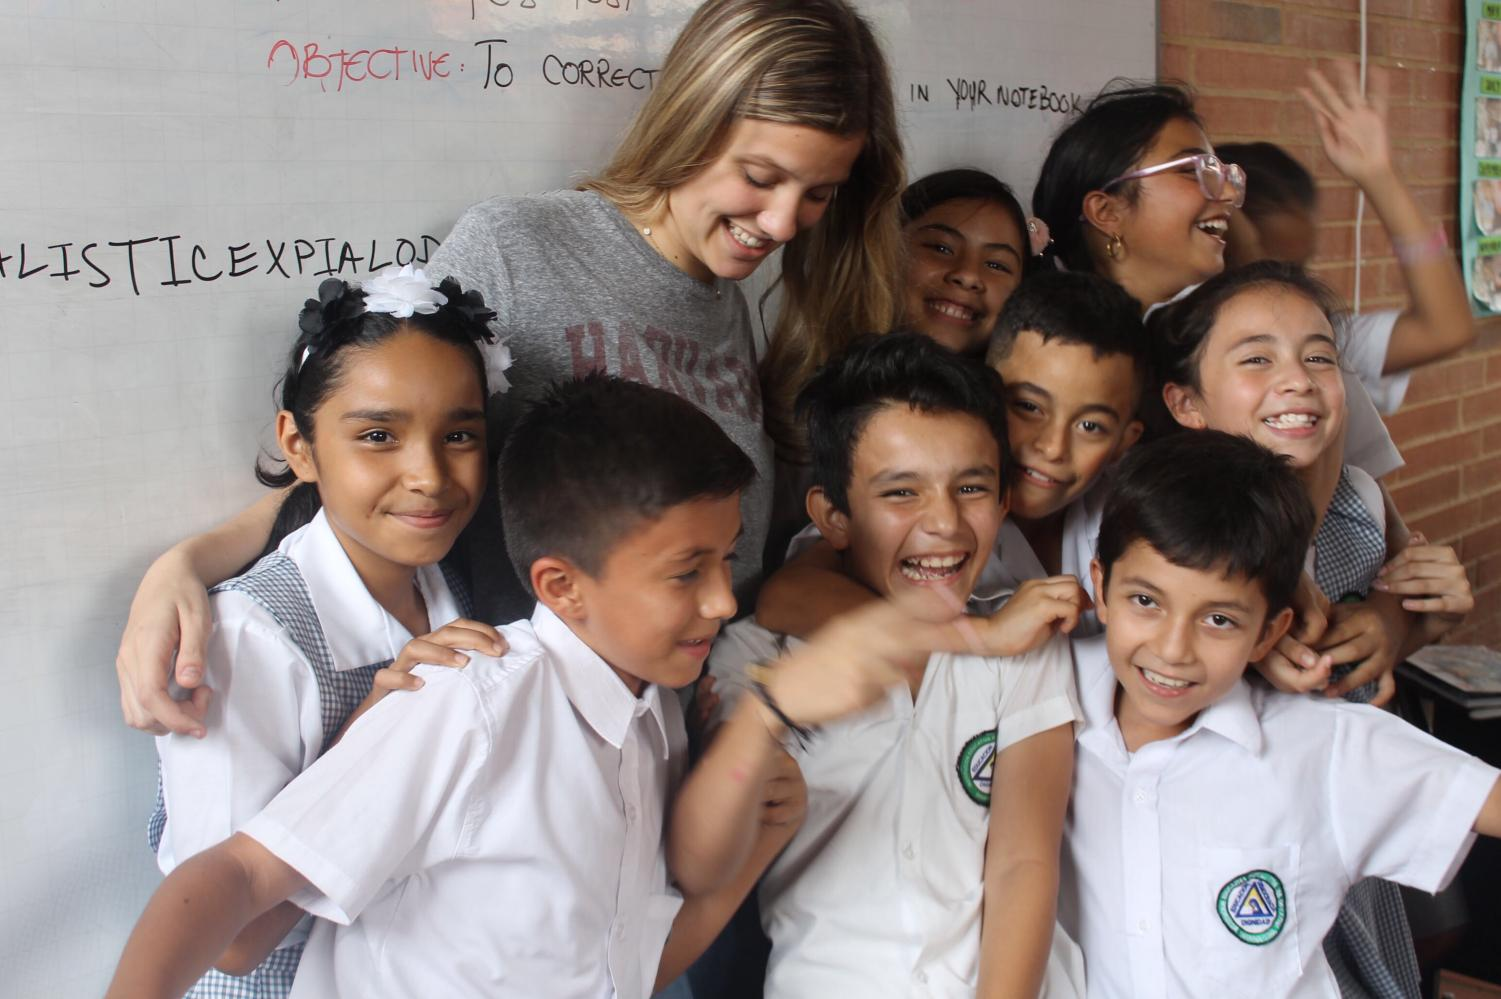 Erwich is pictured here with a group of the young children she met in Columbia.